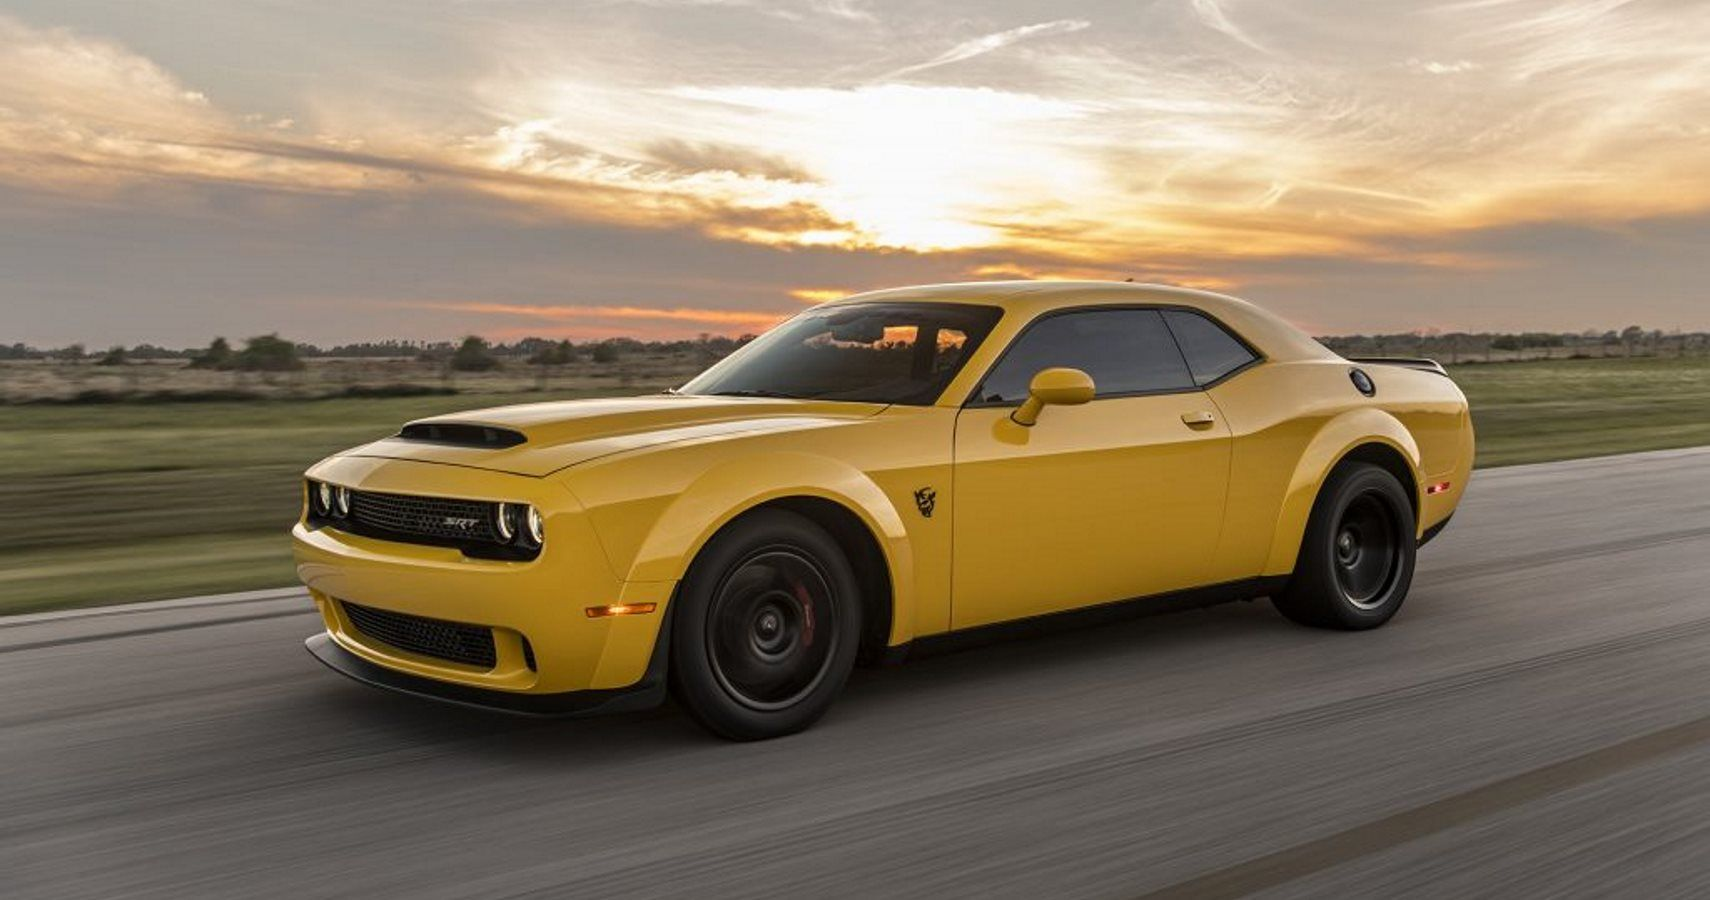 Review - Hennessey Dodge Demon - When 840 hp Just Isn't Enough